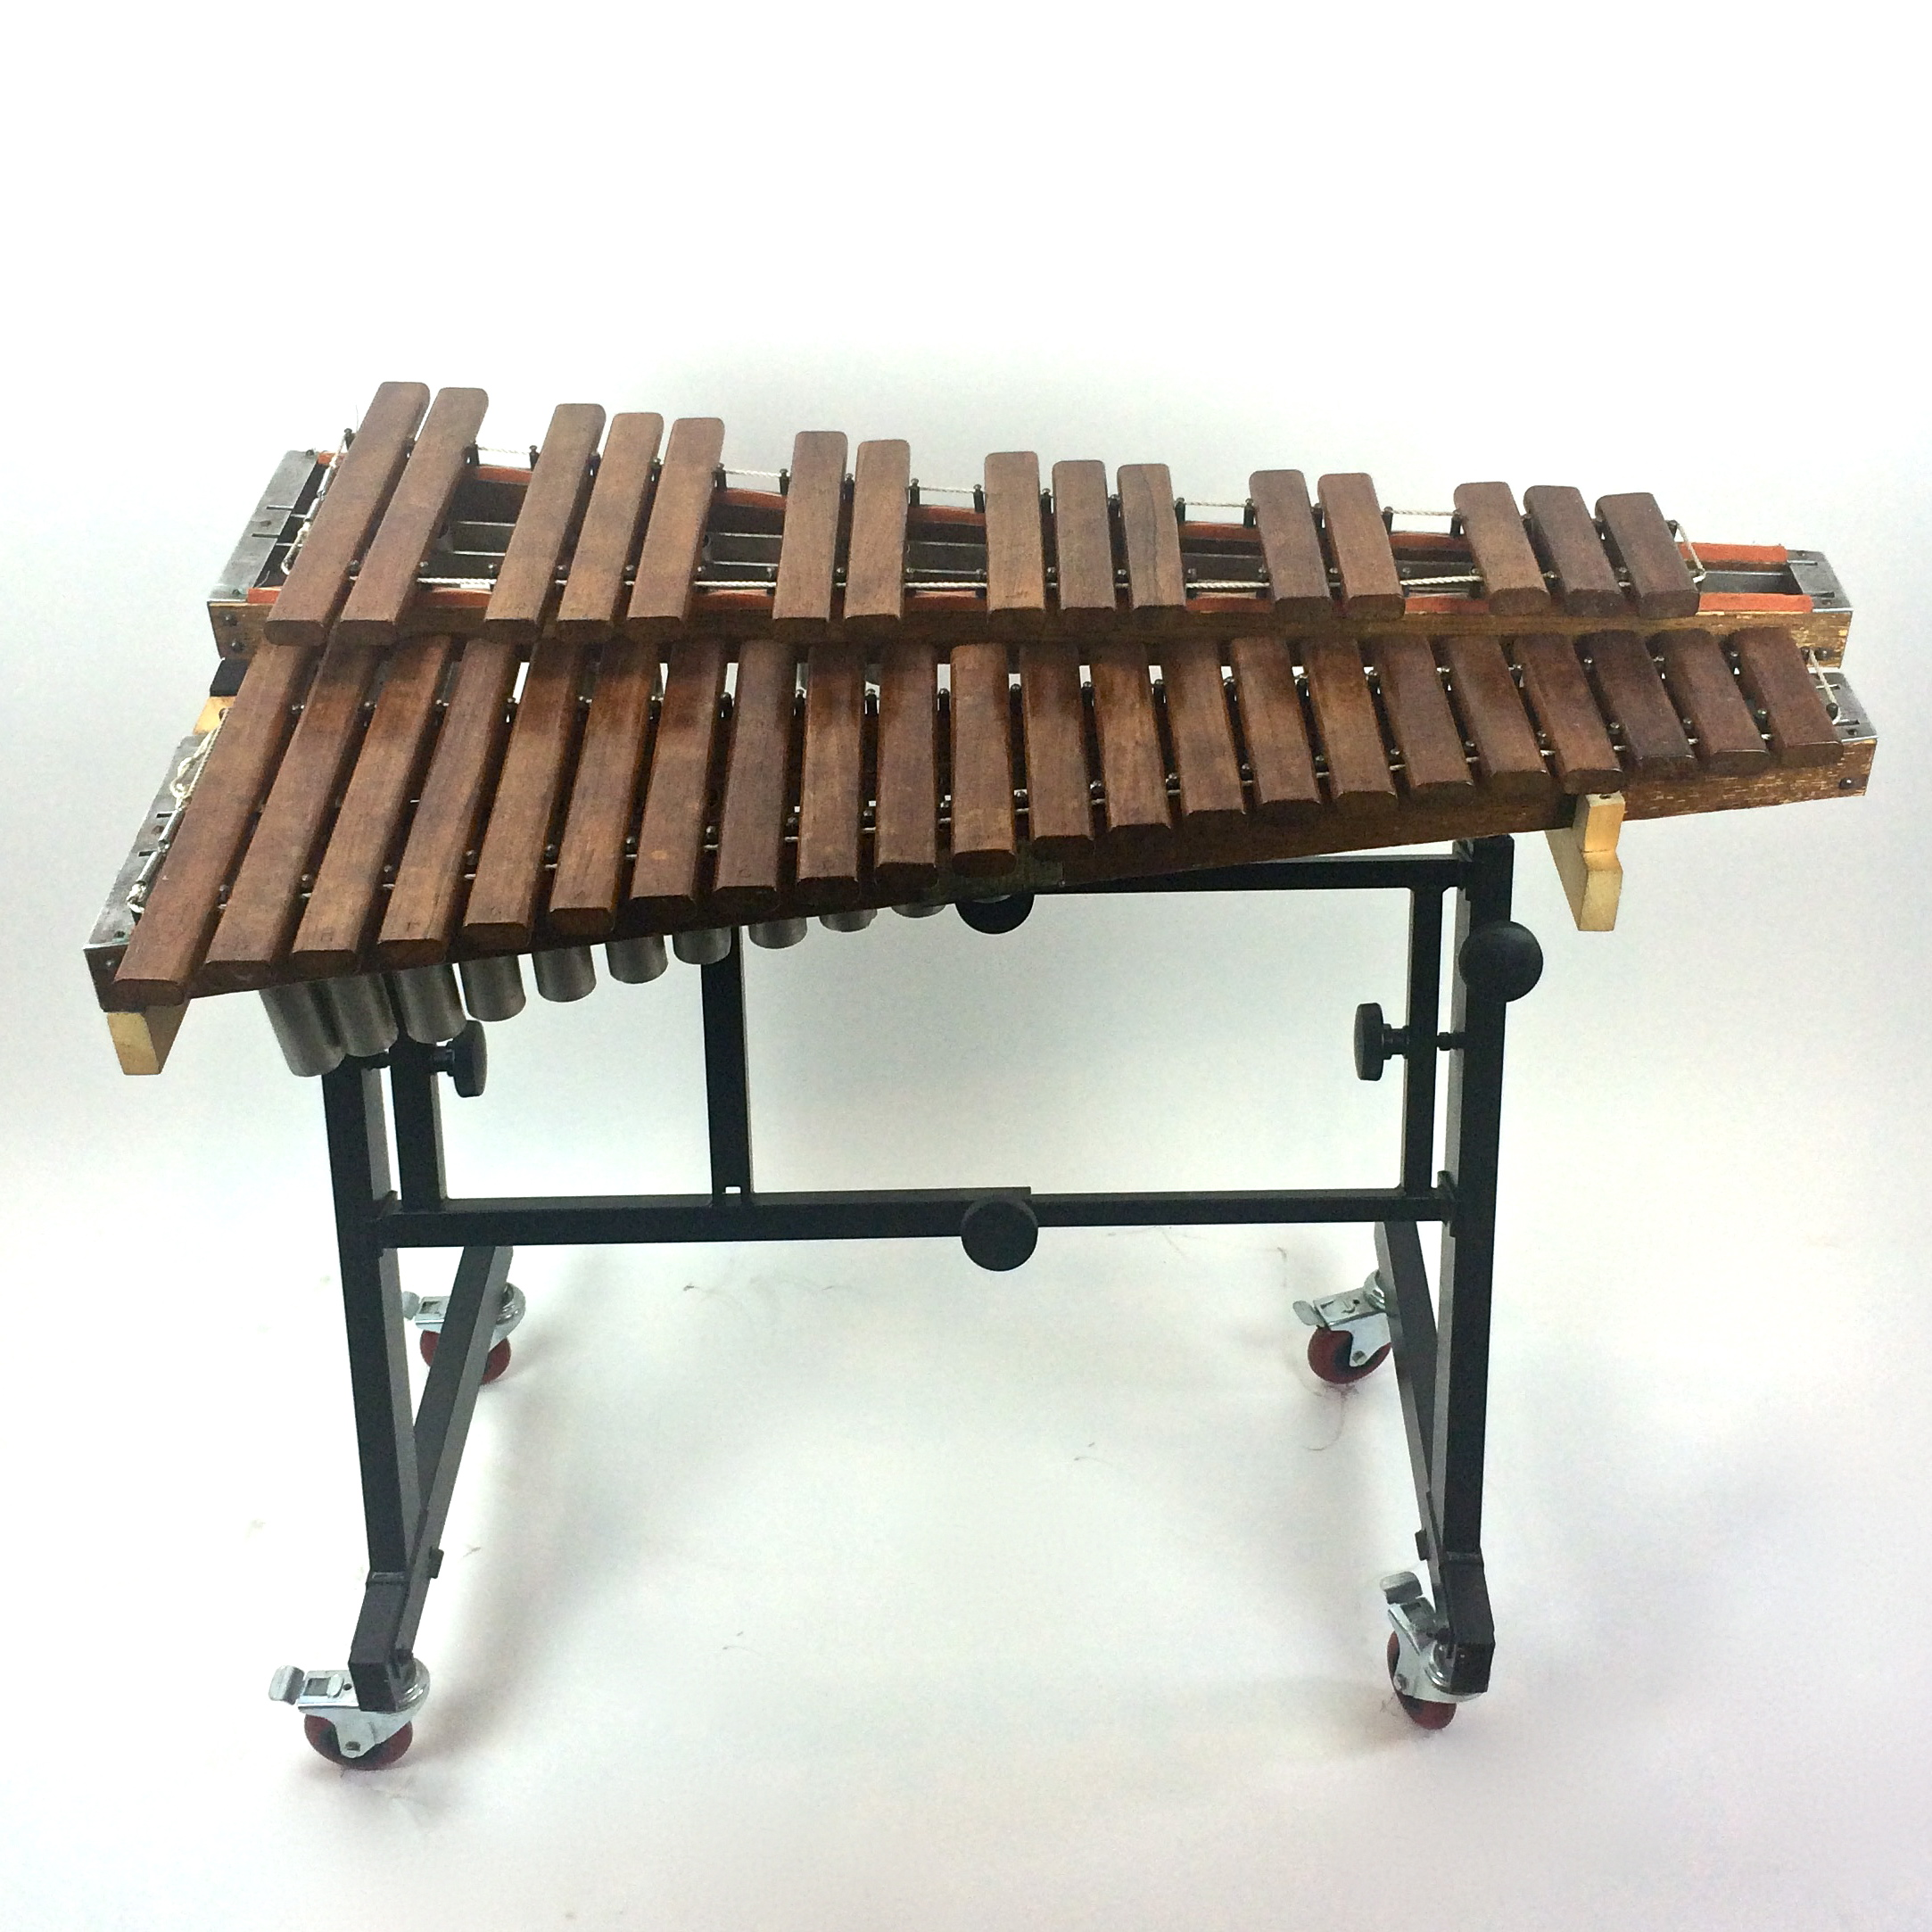 Deagan 3.0 octave Rosewood Xylophone Image